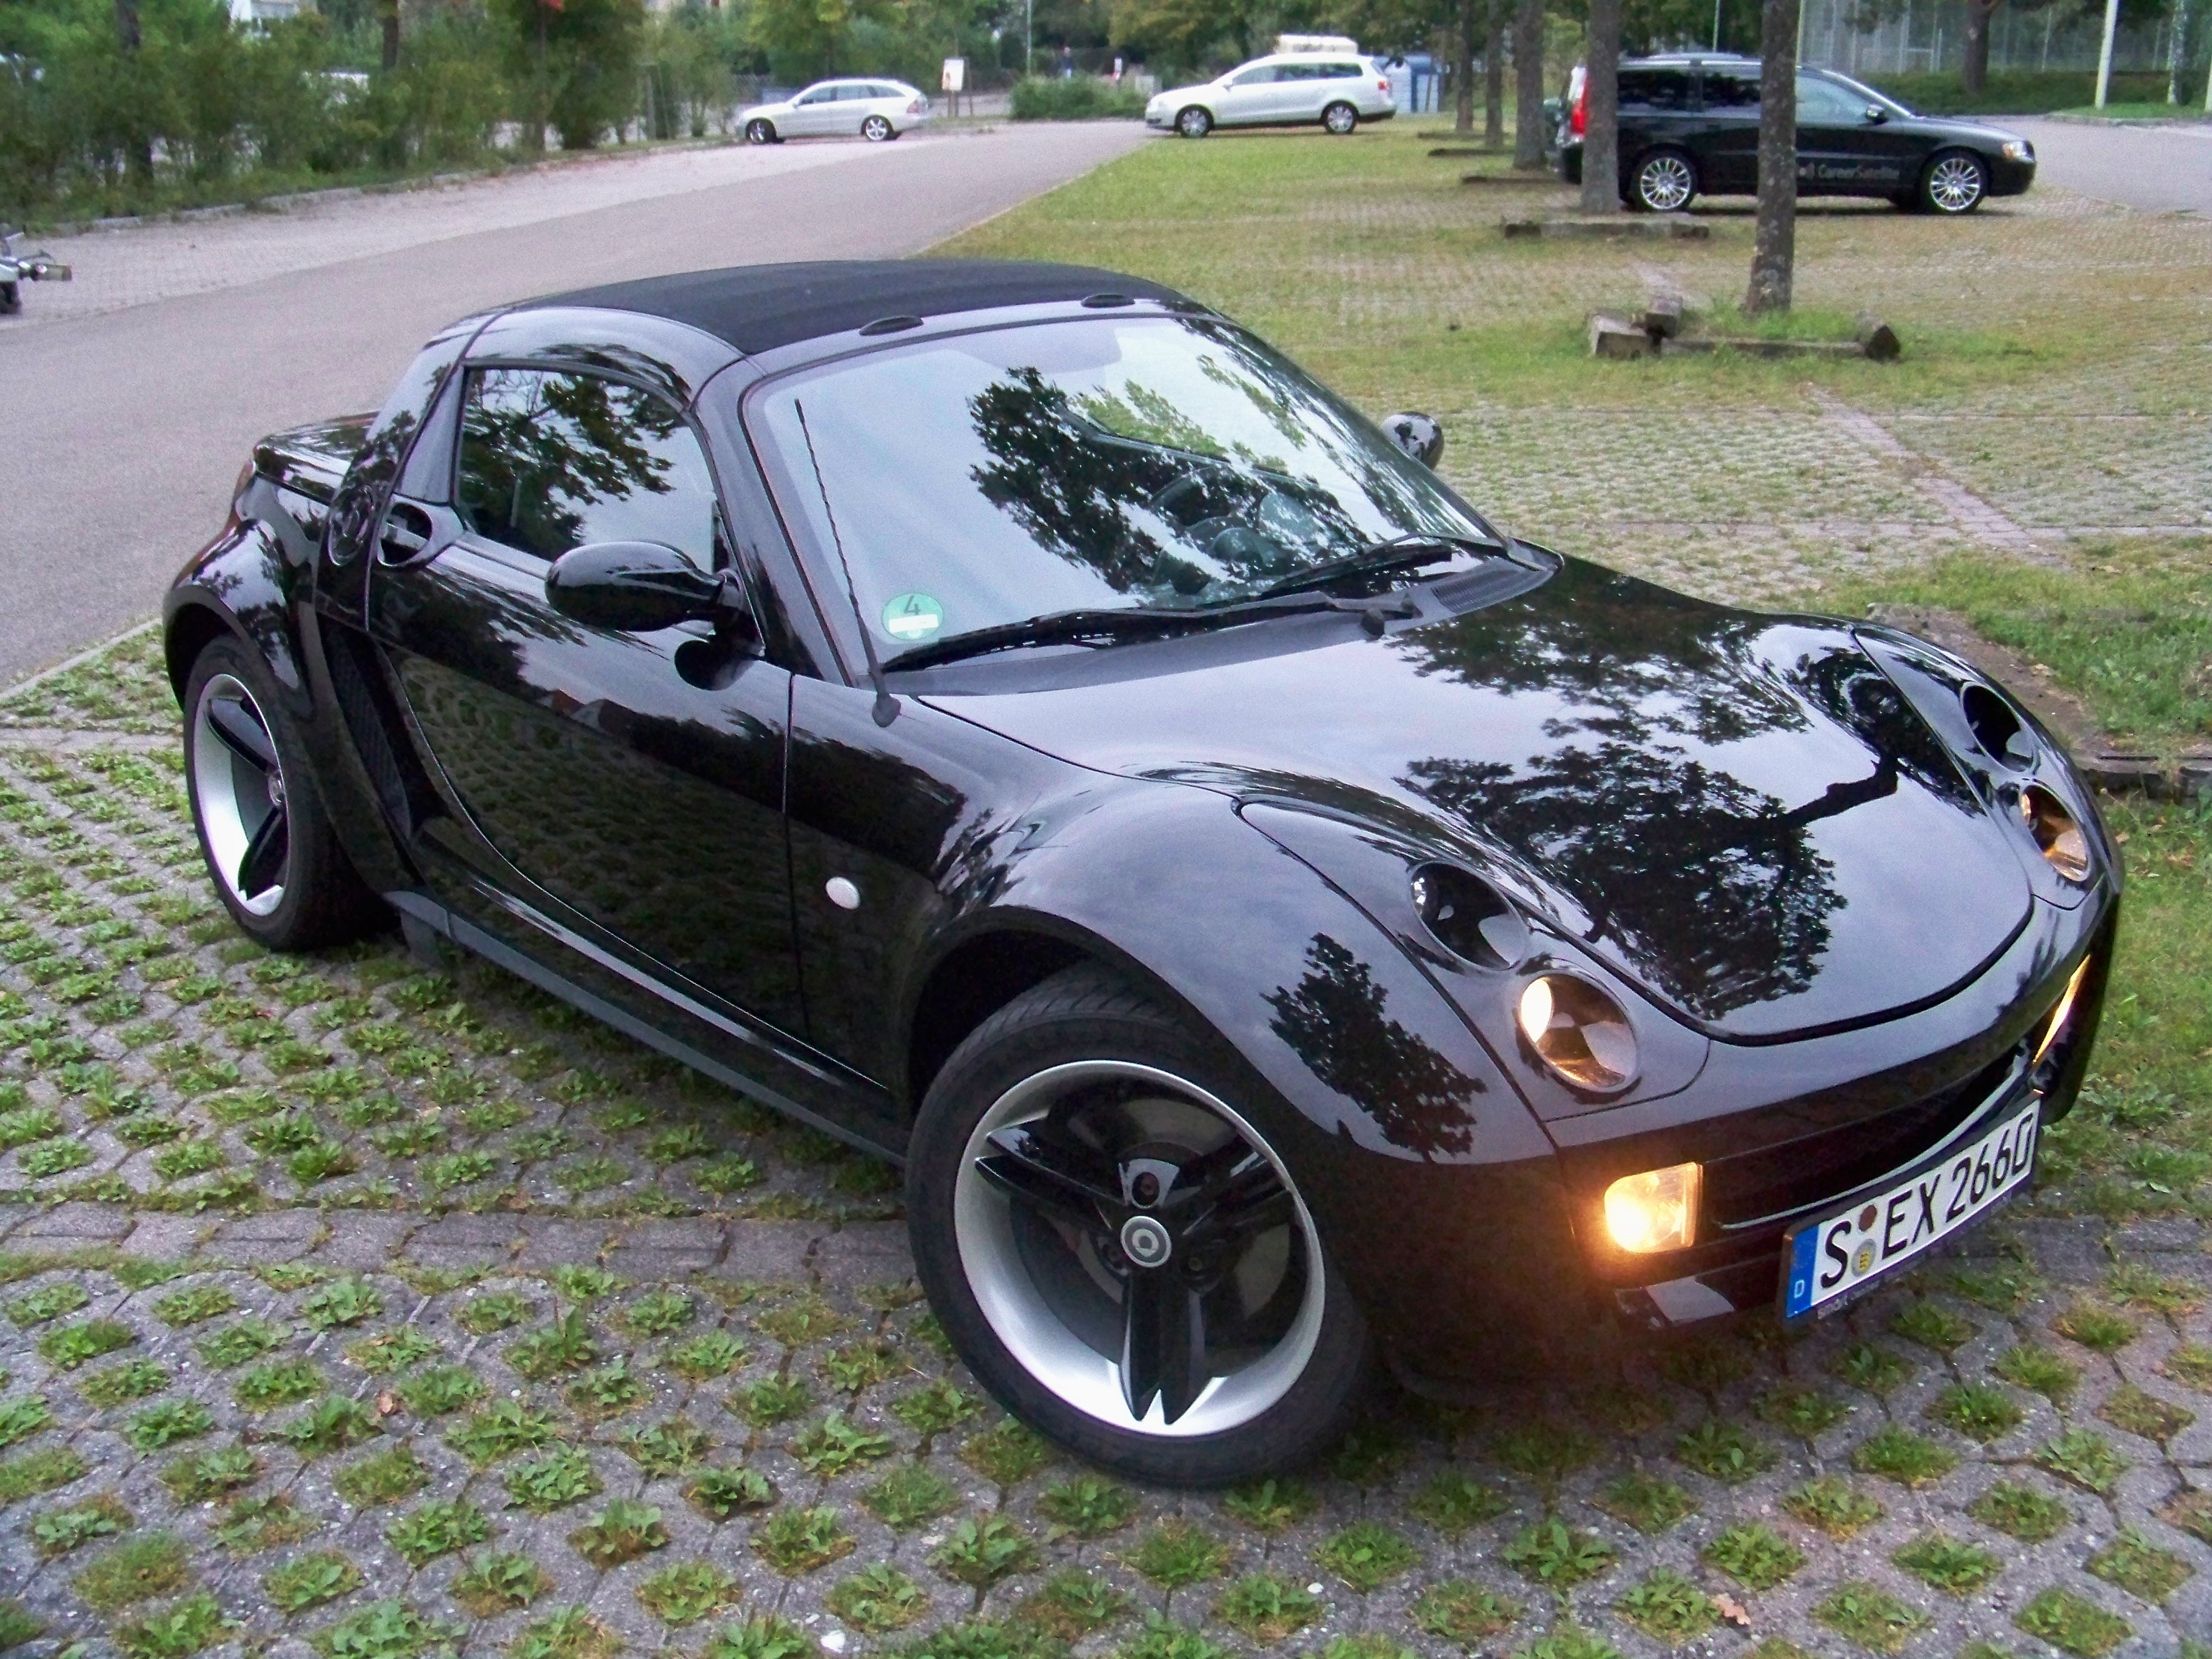 2004 Smart Roadster   pictures, information and specs - Auto